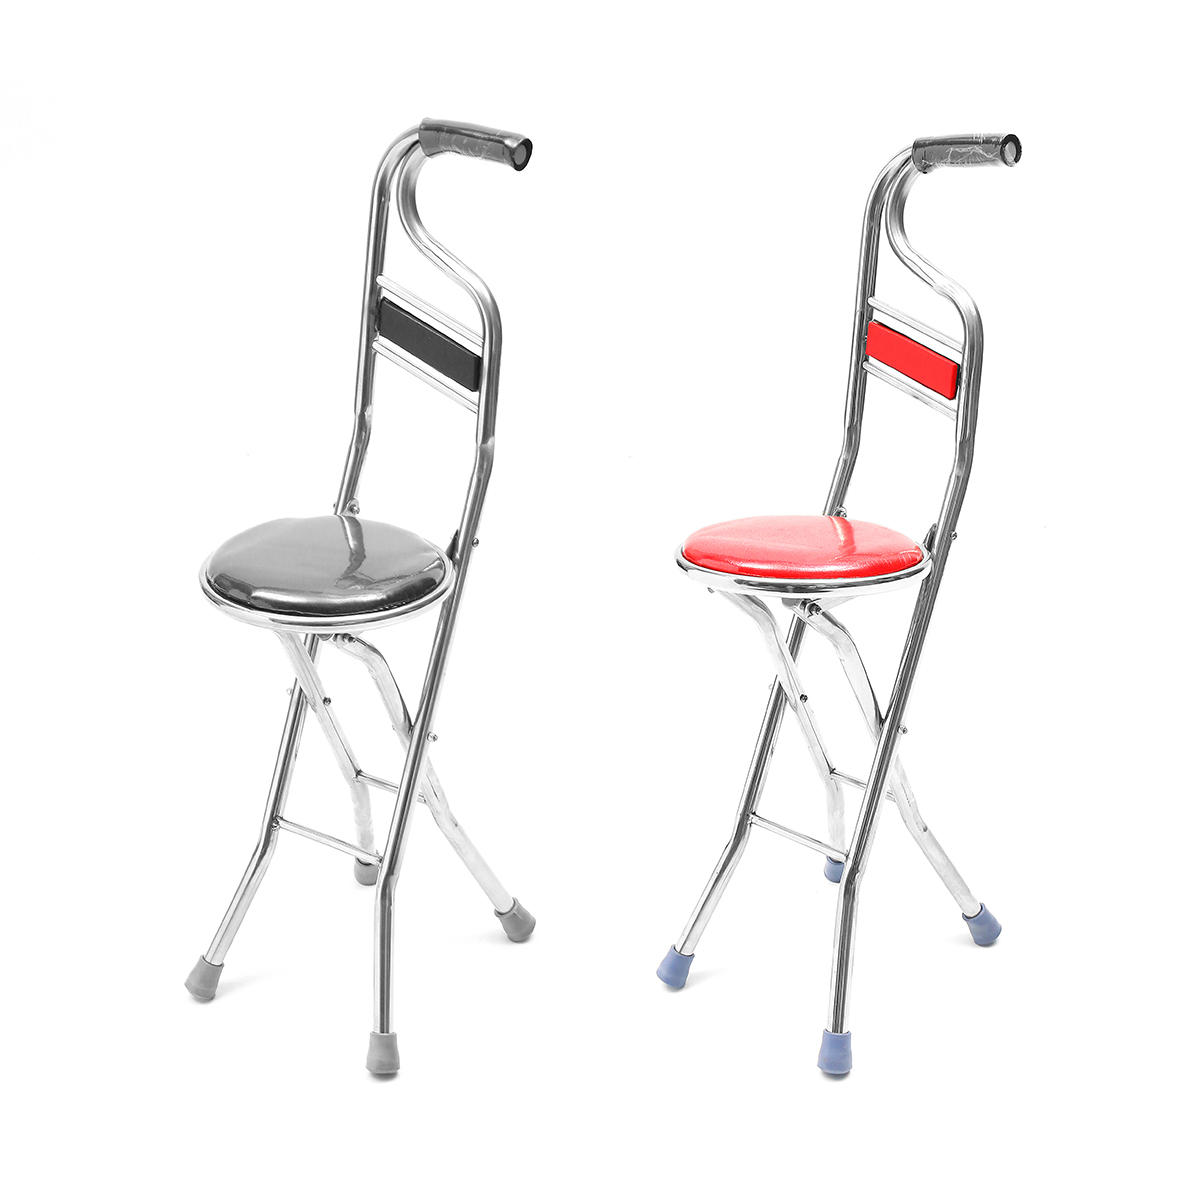 Amazing Stainless Steel Portable Folding Walking Stick Chair Seat Stool Travel Cane Pabps2019 Chair Design Images Pabps2019Com